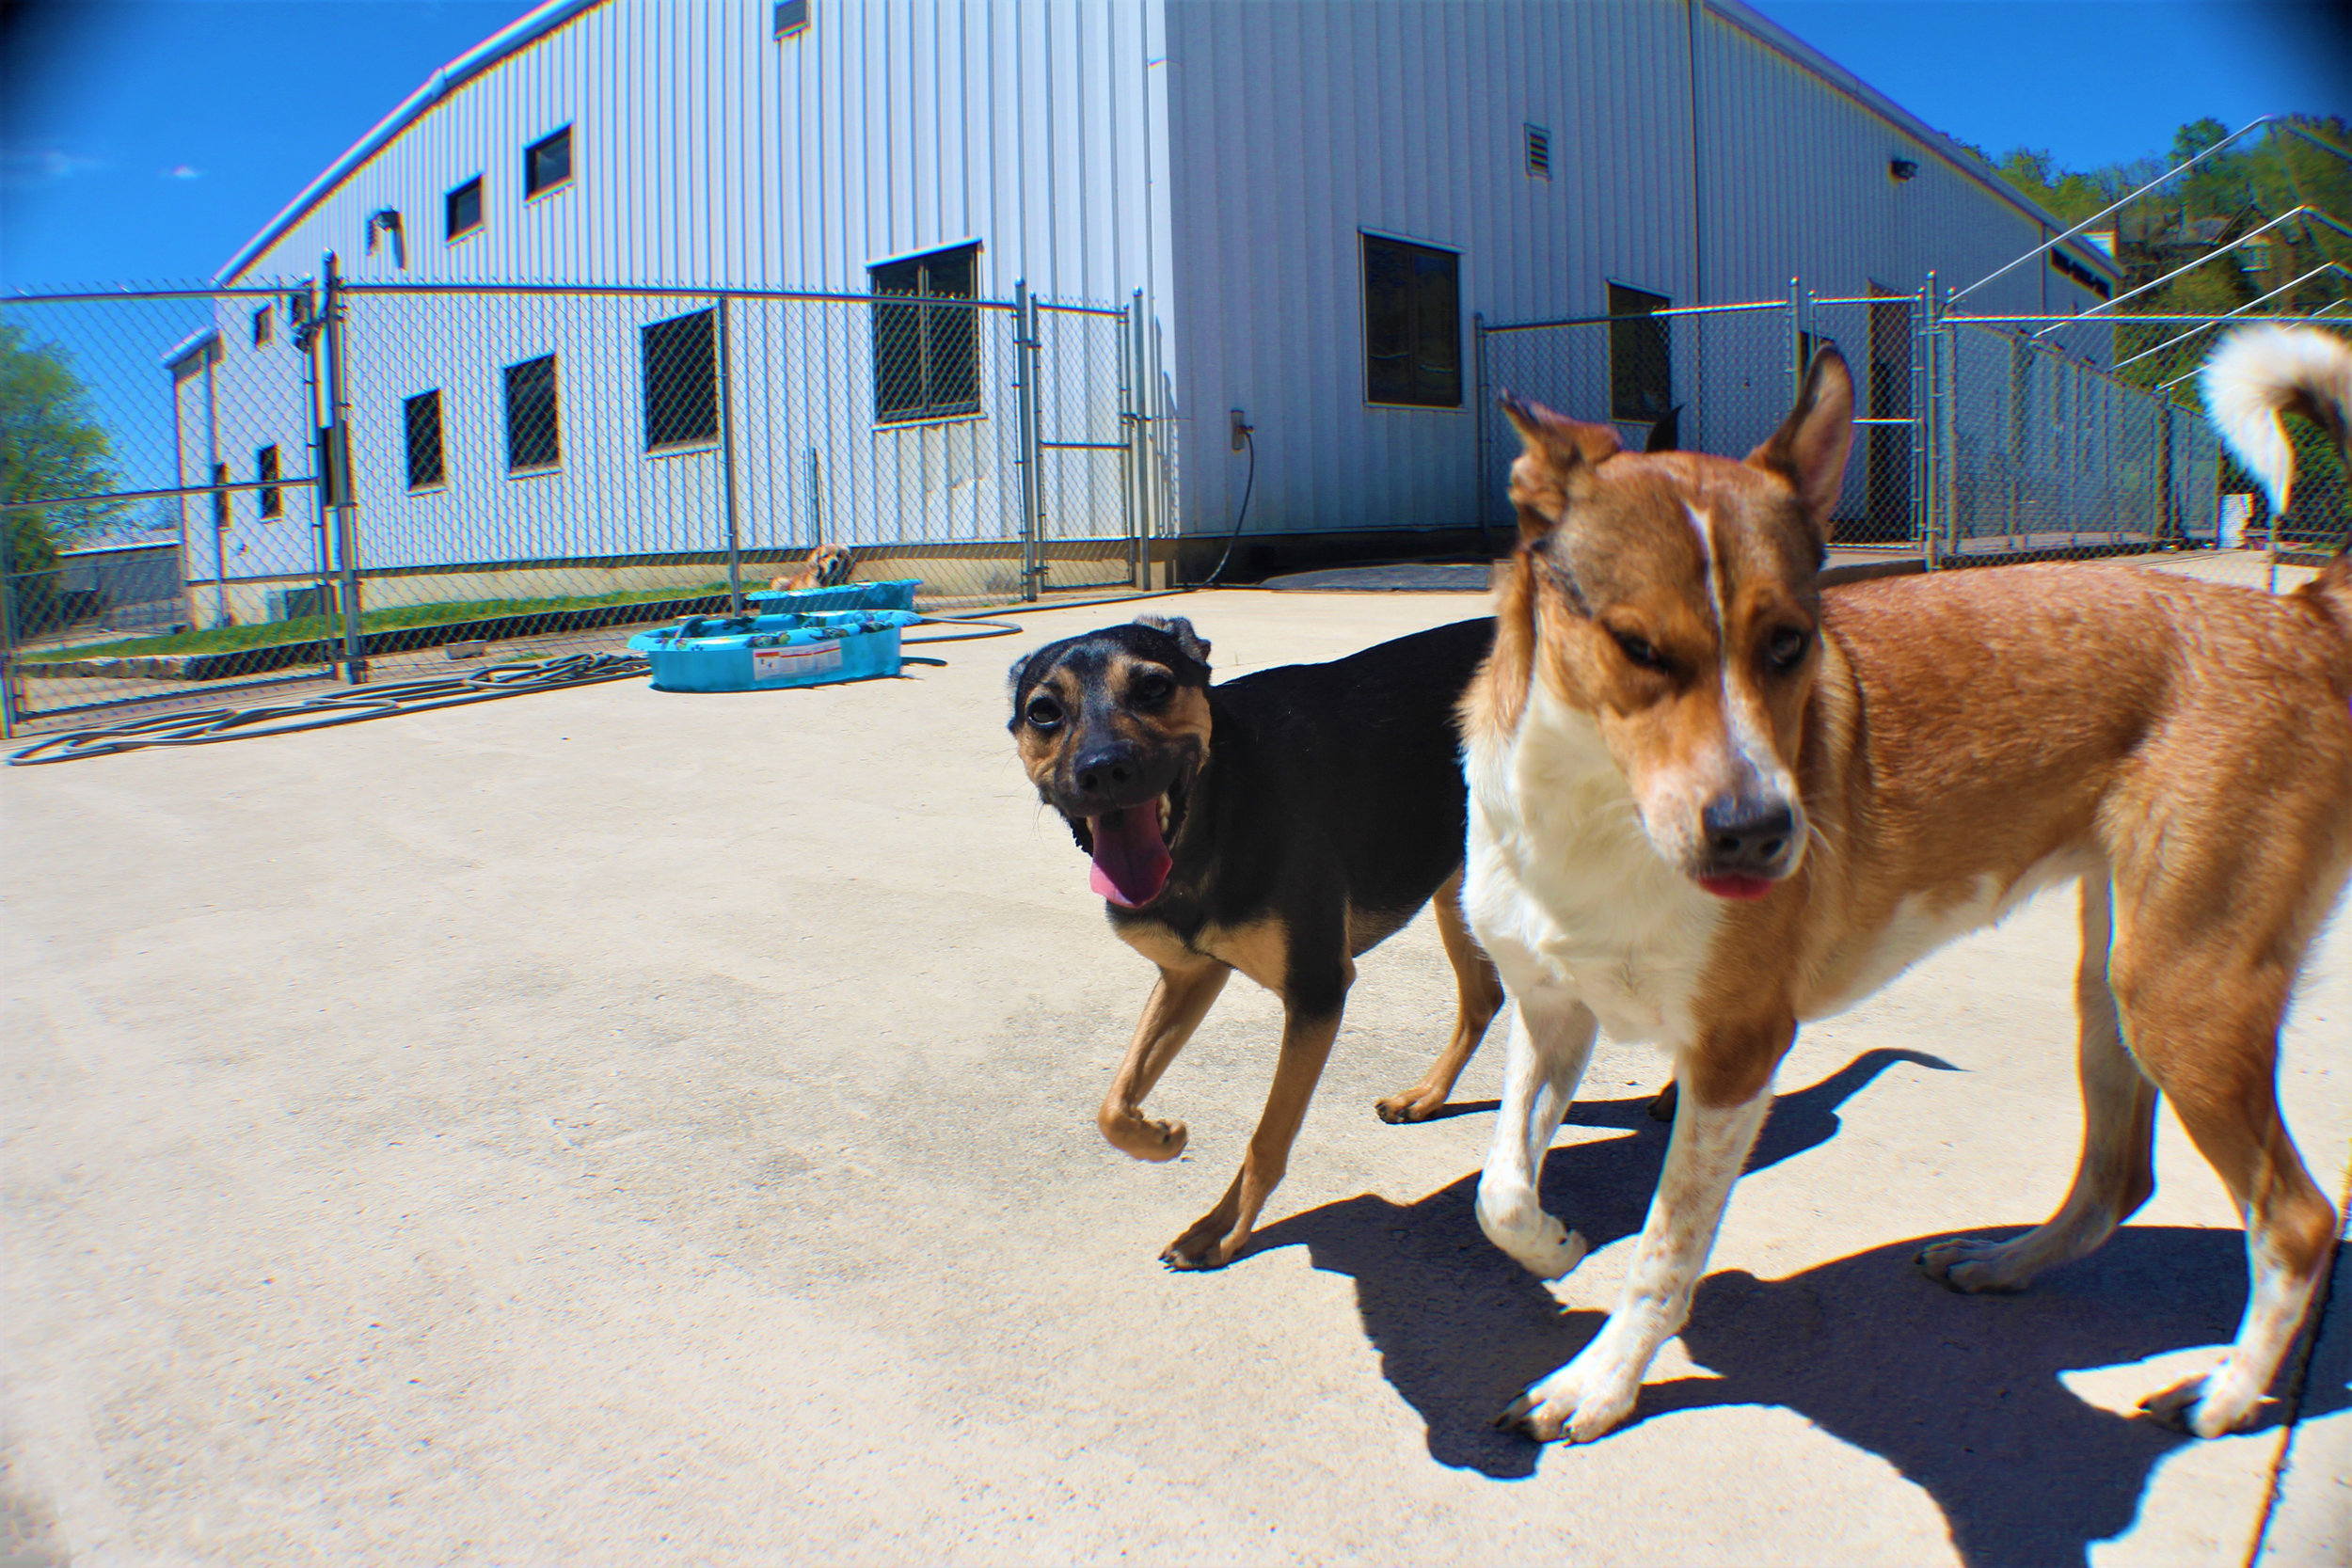 Here's Maple playing with Elwood. They are definitely two peas in a pod. When both of the dogs are here for doggie daycare they will almost always be together. They make a fun couple to say the least. It's almost like a sister brother relationship, both can make the other a little bit annoyed, but at the end of the day there back to being friends.